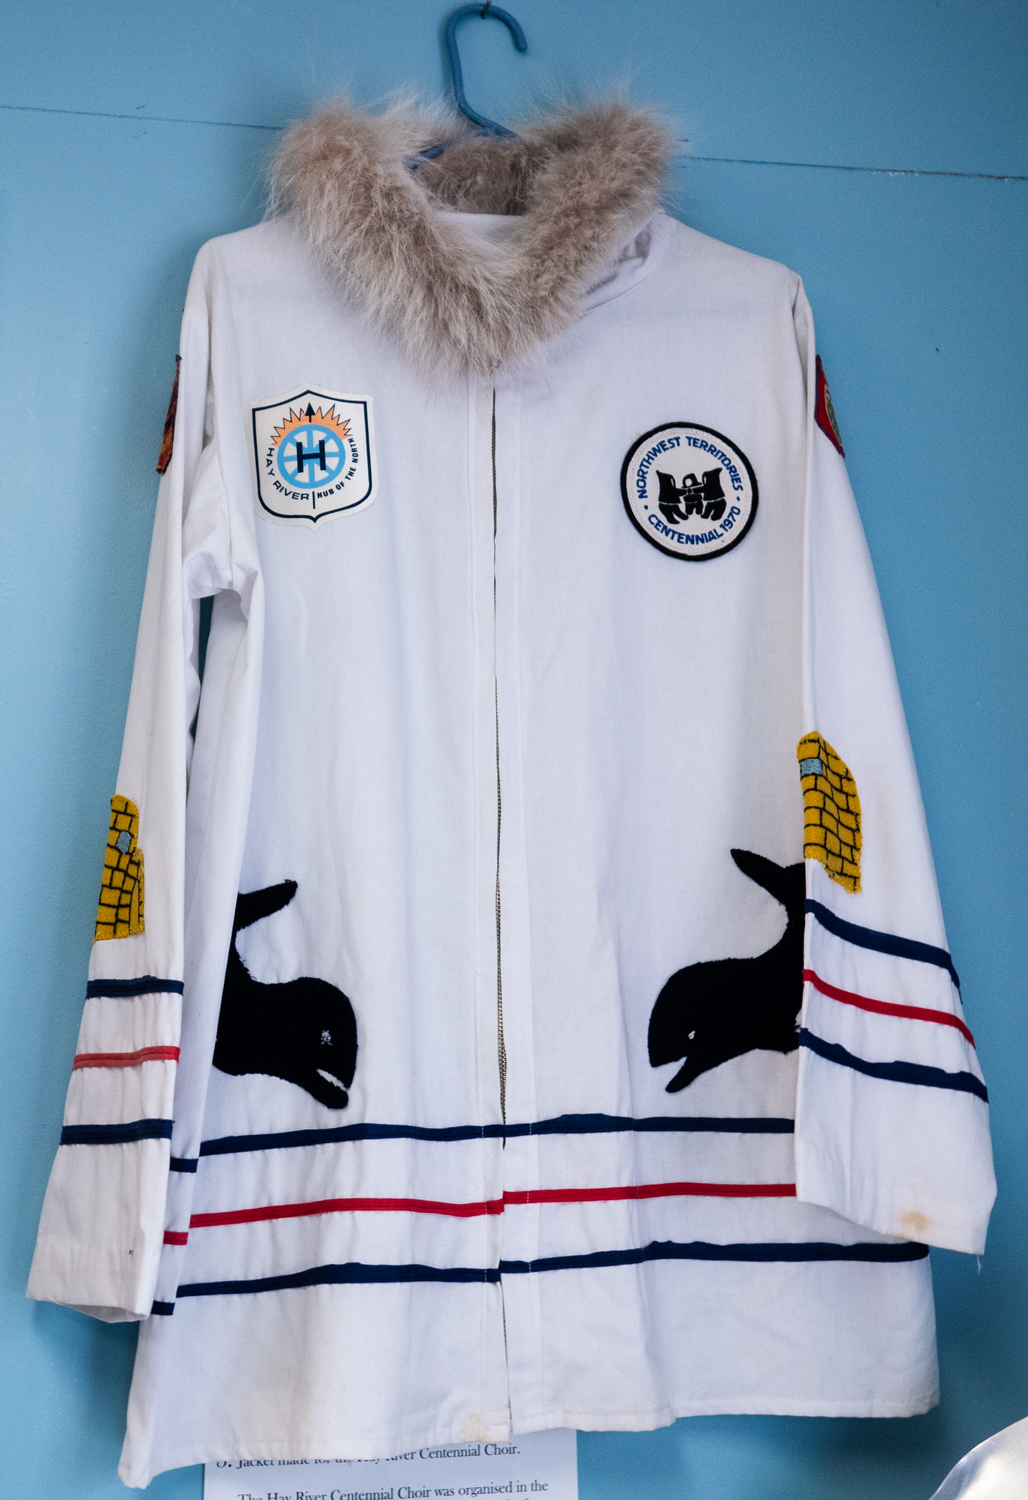 A white parka like jacket hangs on a wall. The jacket has a fur collar, three stripes across the bottom and lower sleeves, two whales swimming toward each other, and symbolic patches.